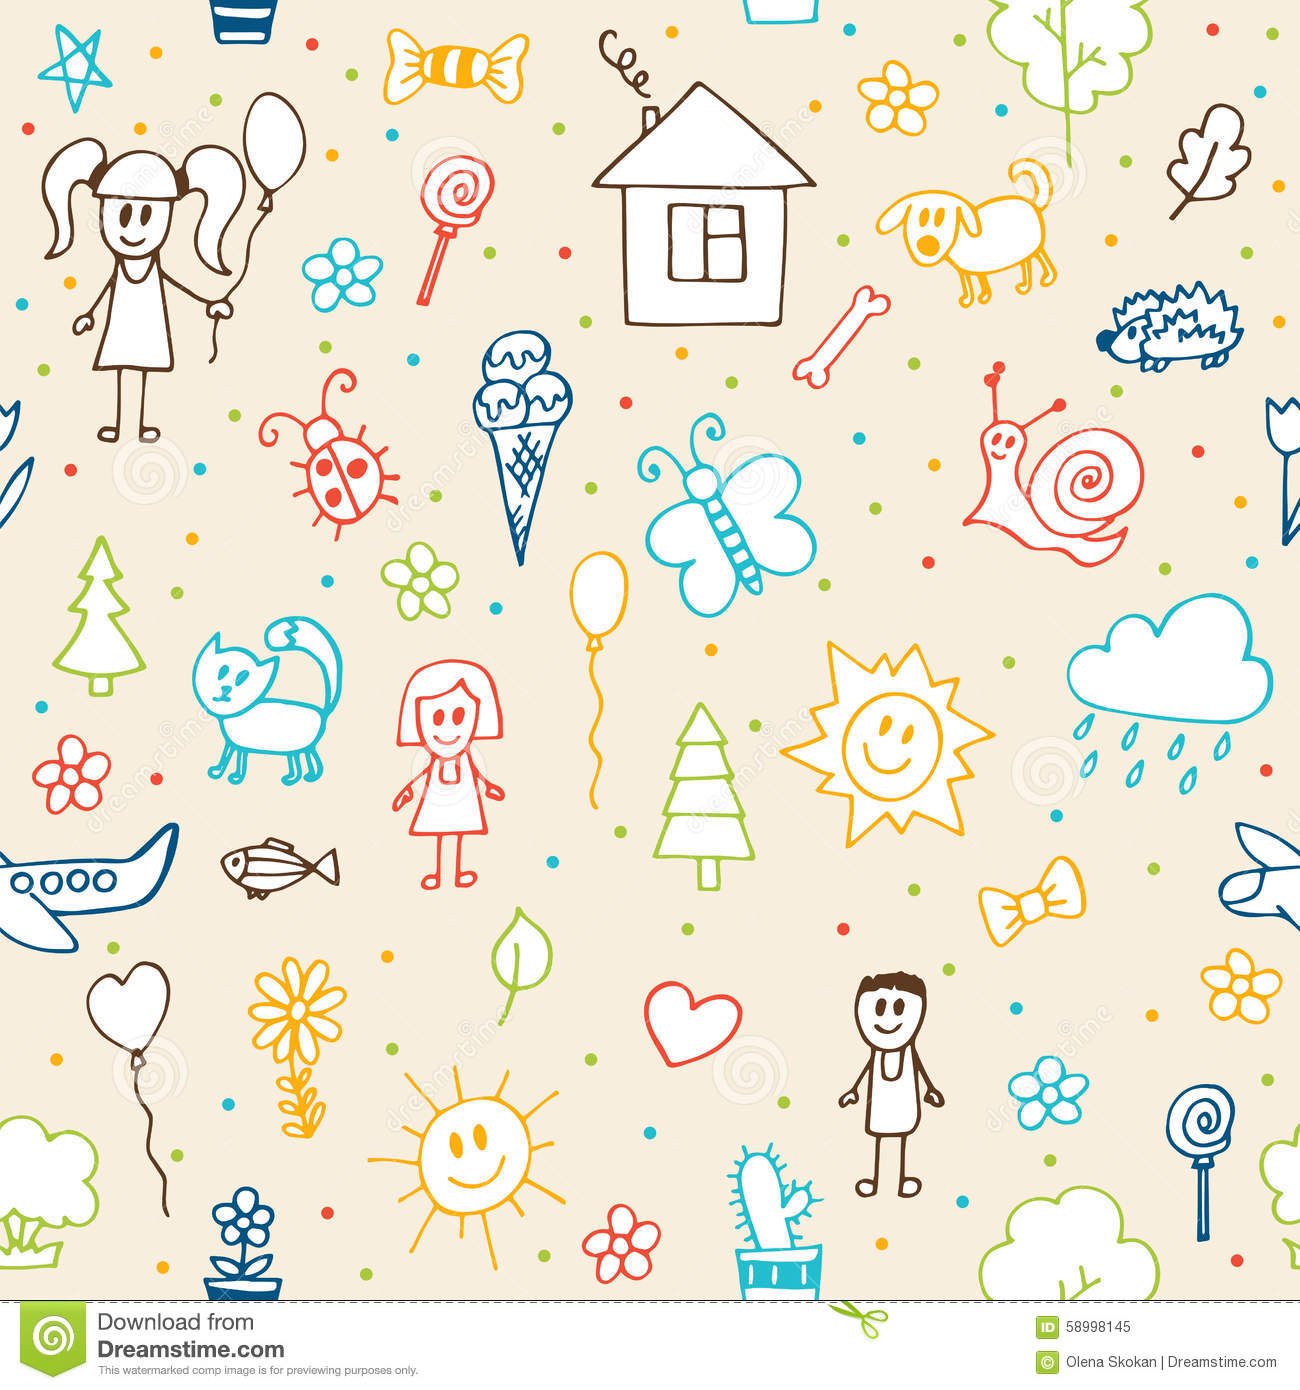 Scribble Drawing Kids : Hand drawn children drawings seamless pattern doodle